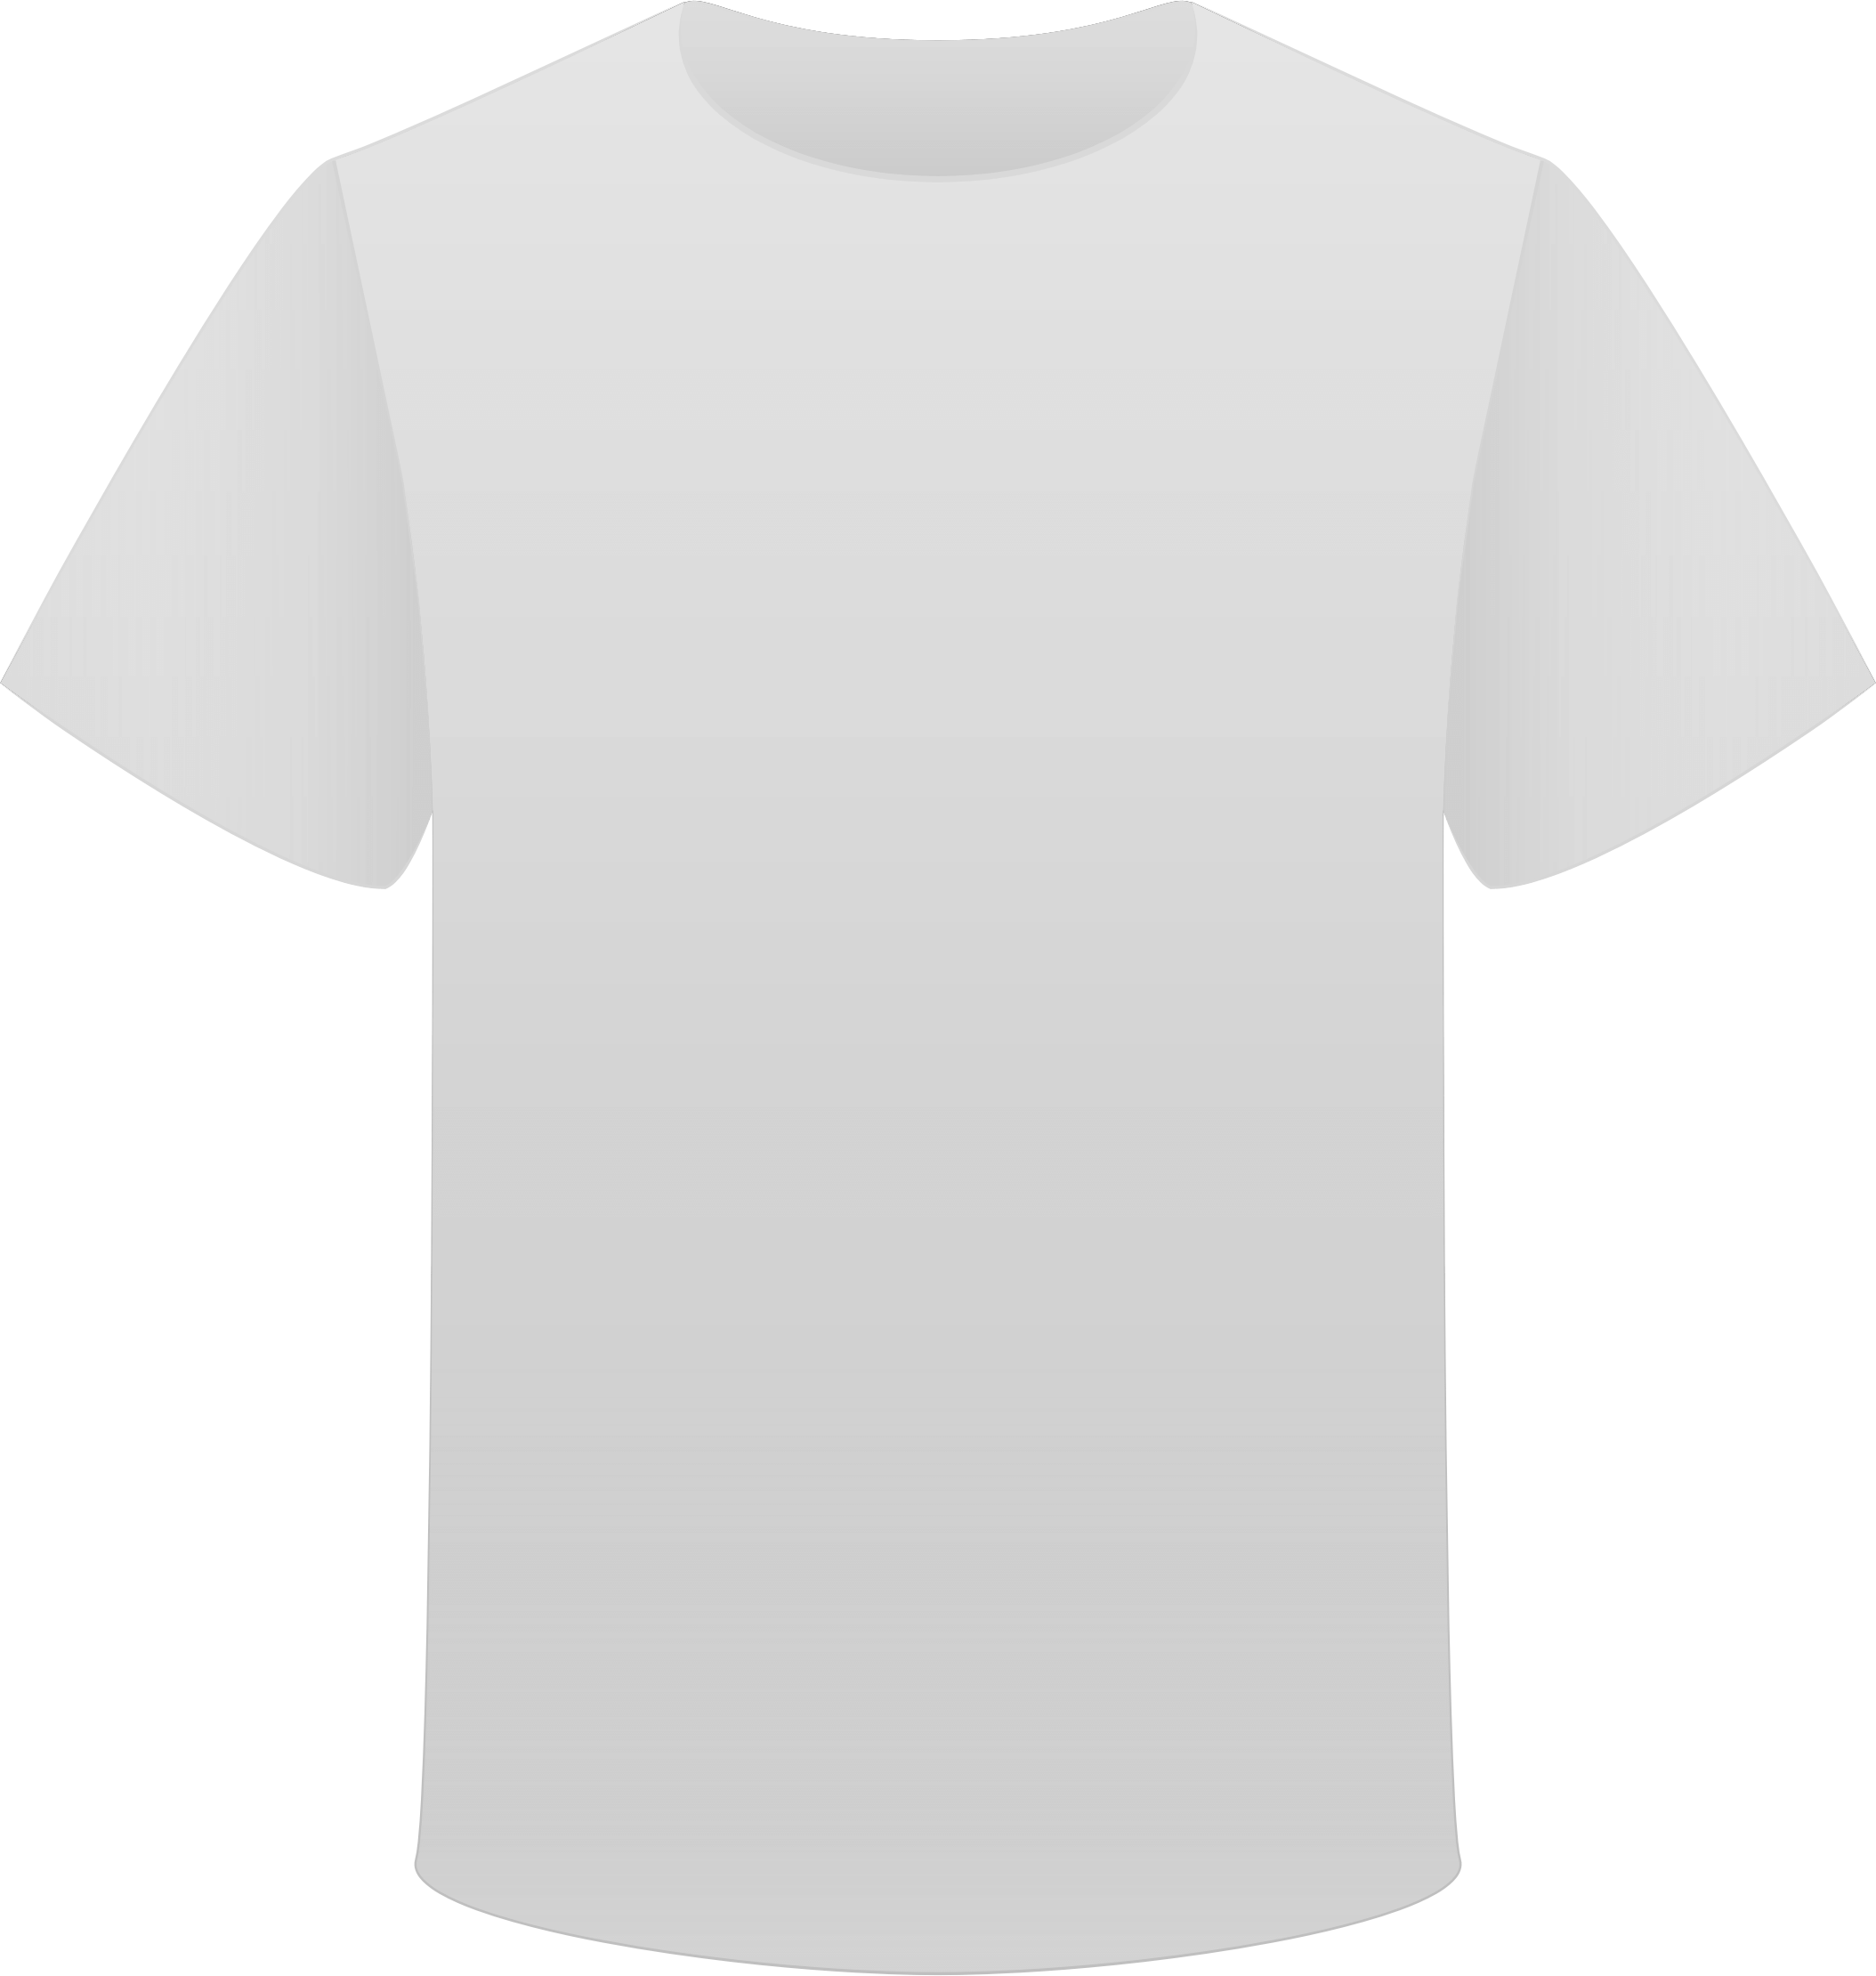 T shirt black and white clipart - Download Clothes T Shirts